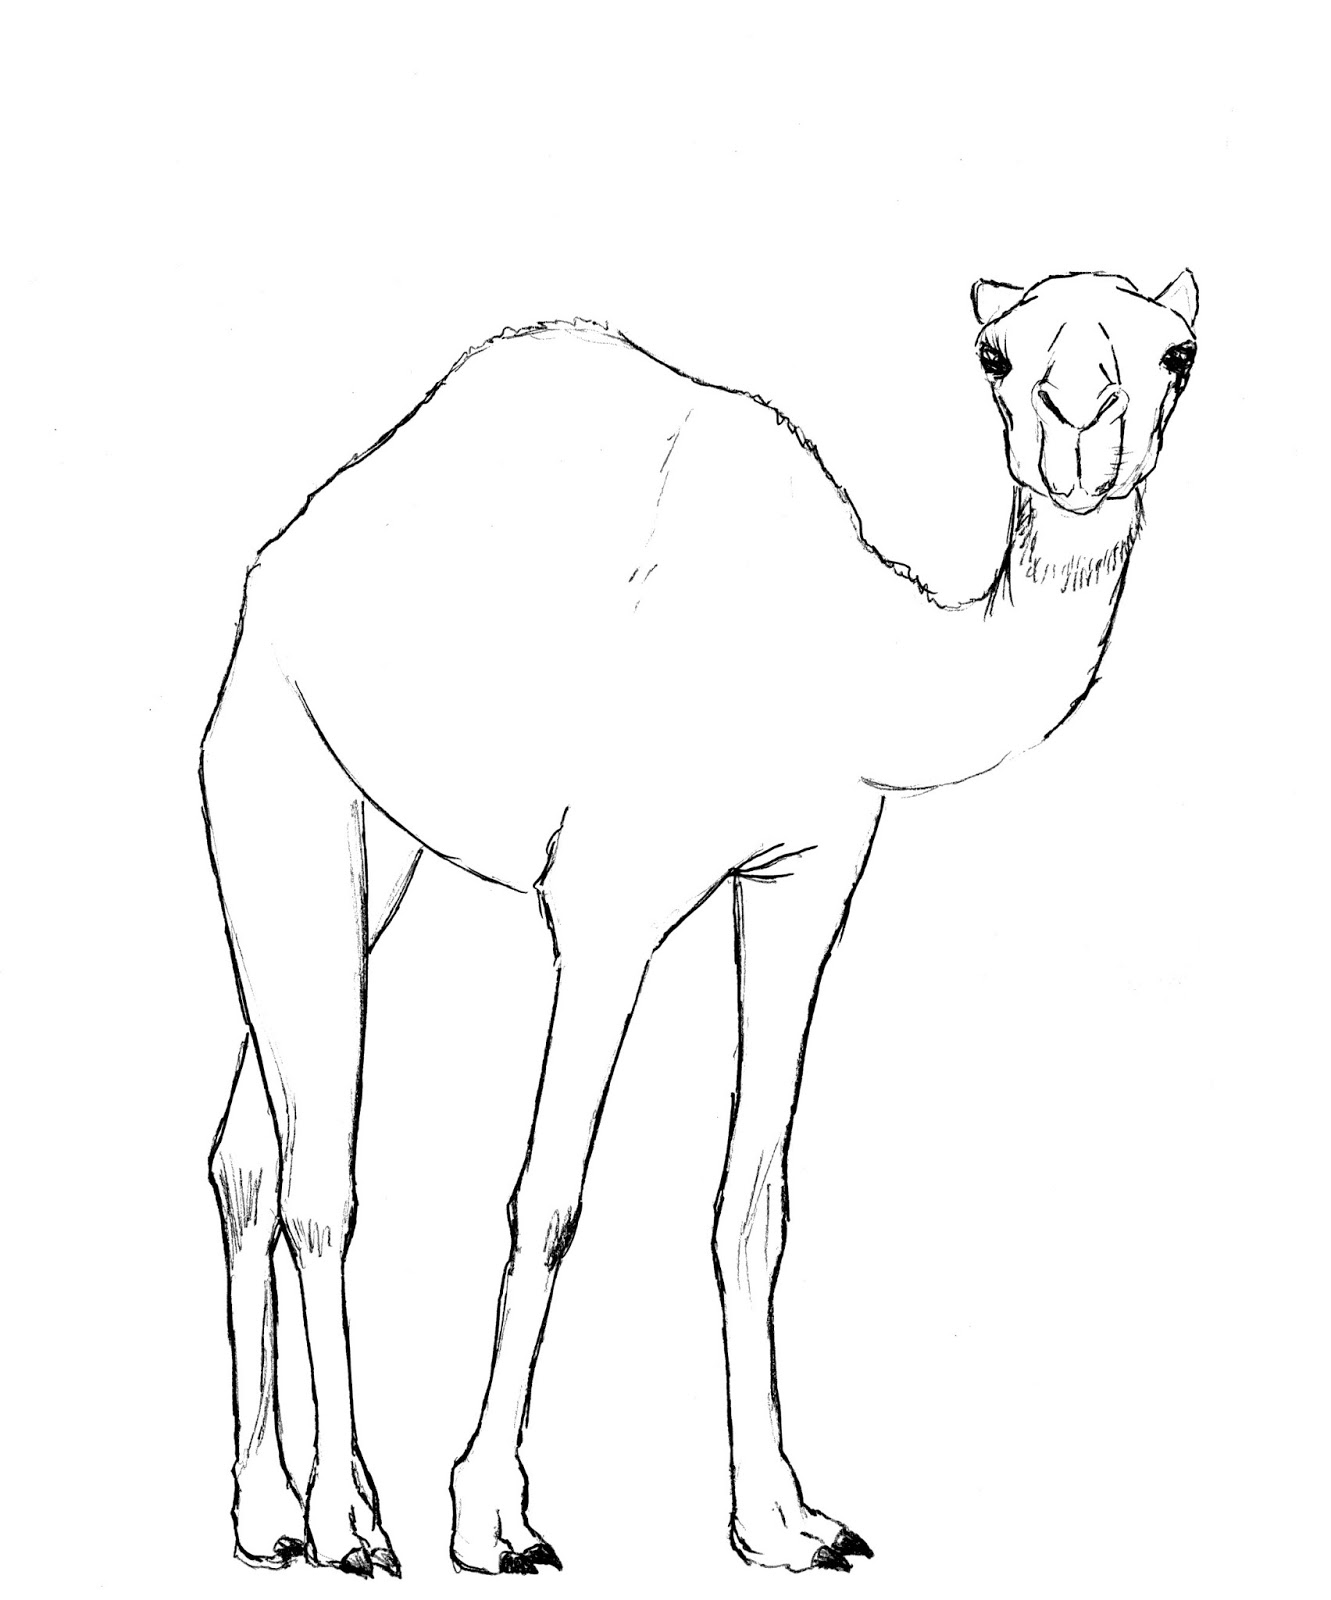 Drawing Lines With Html : How to draw a camel drawing lessons